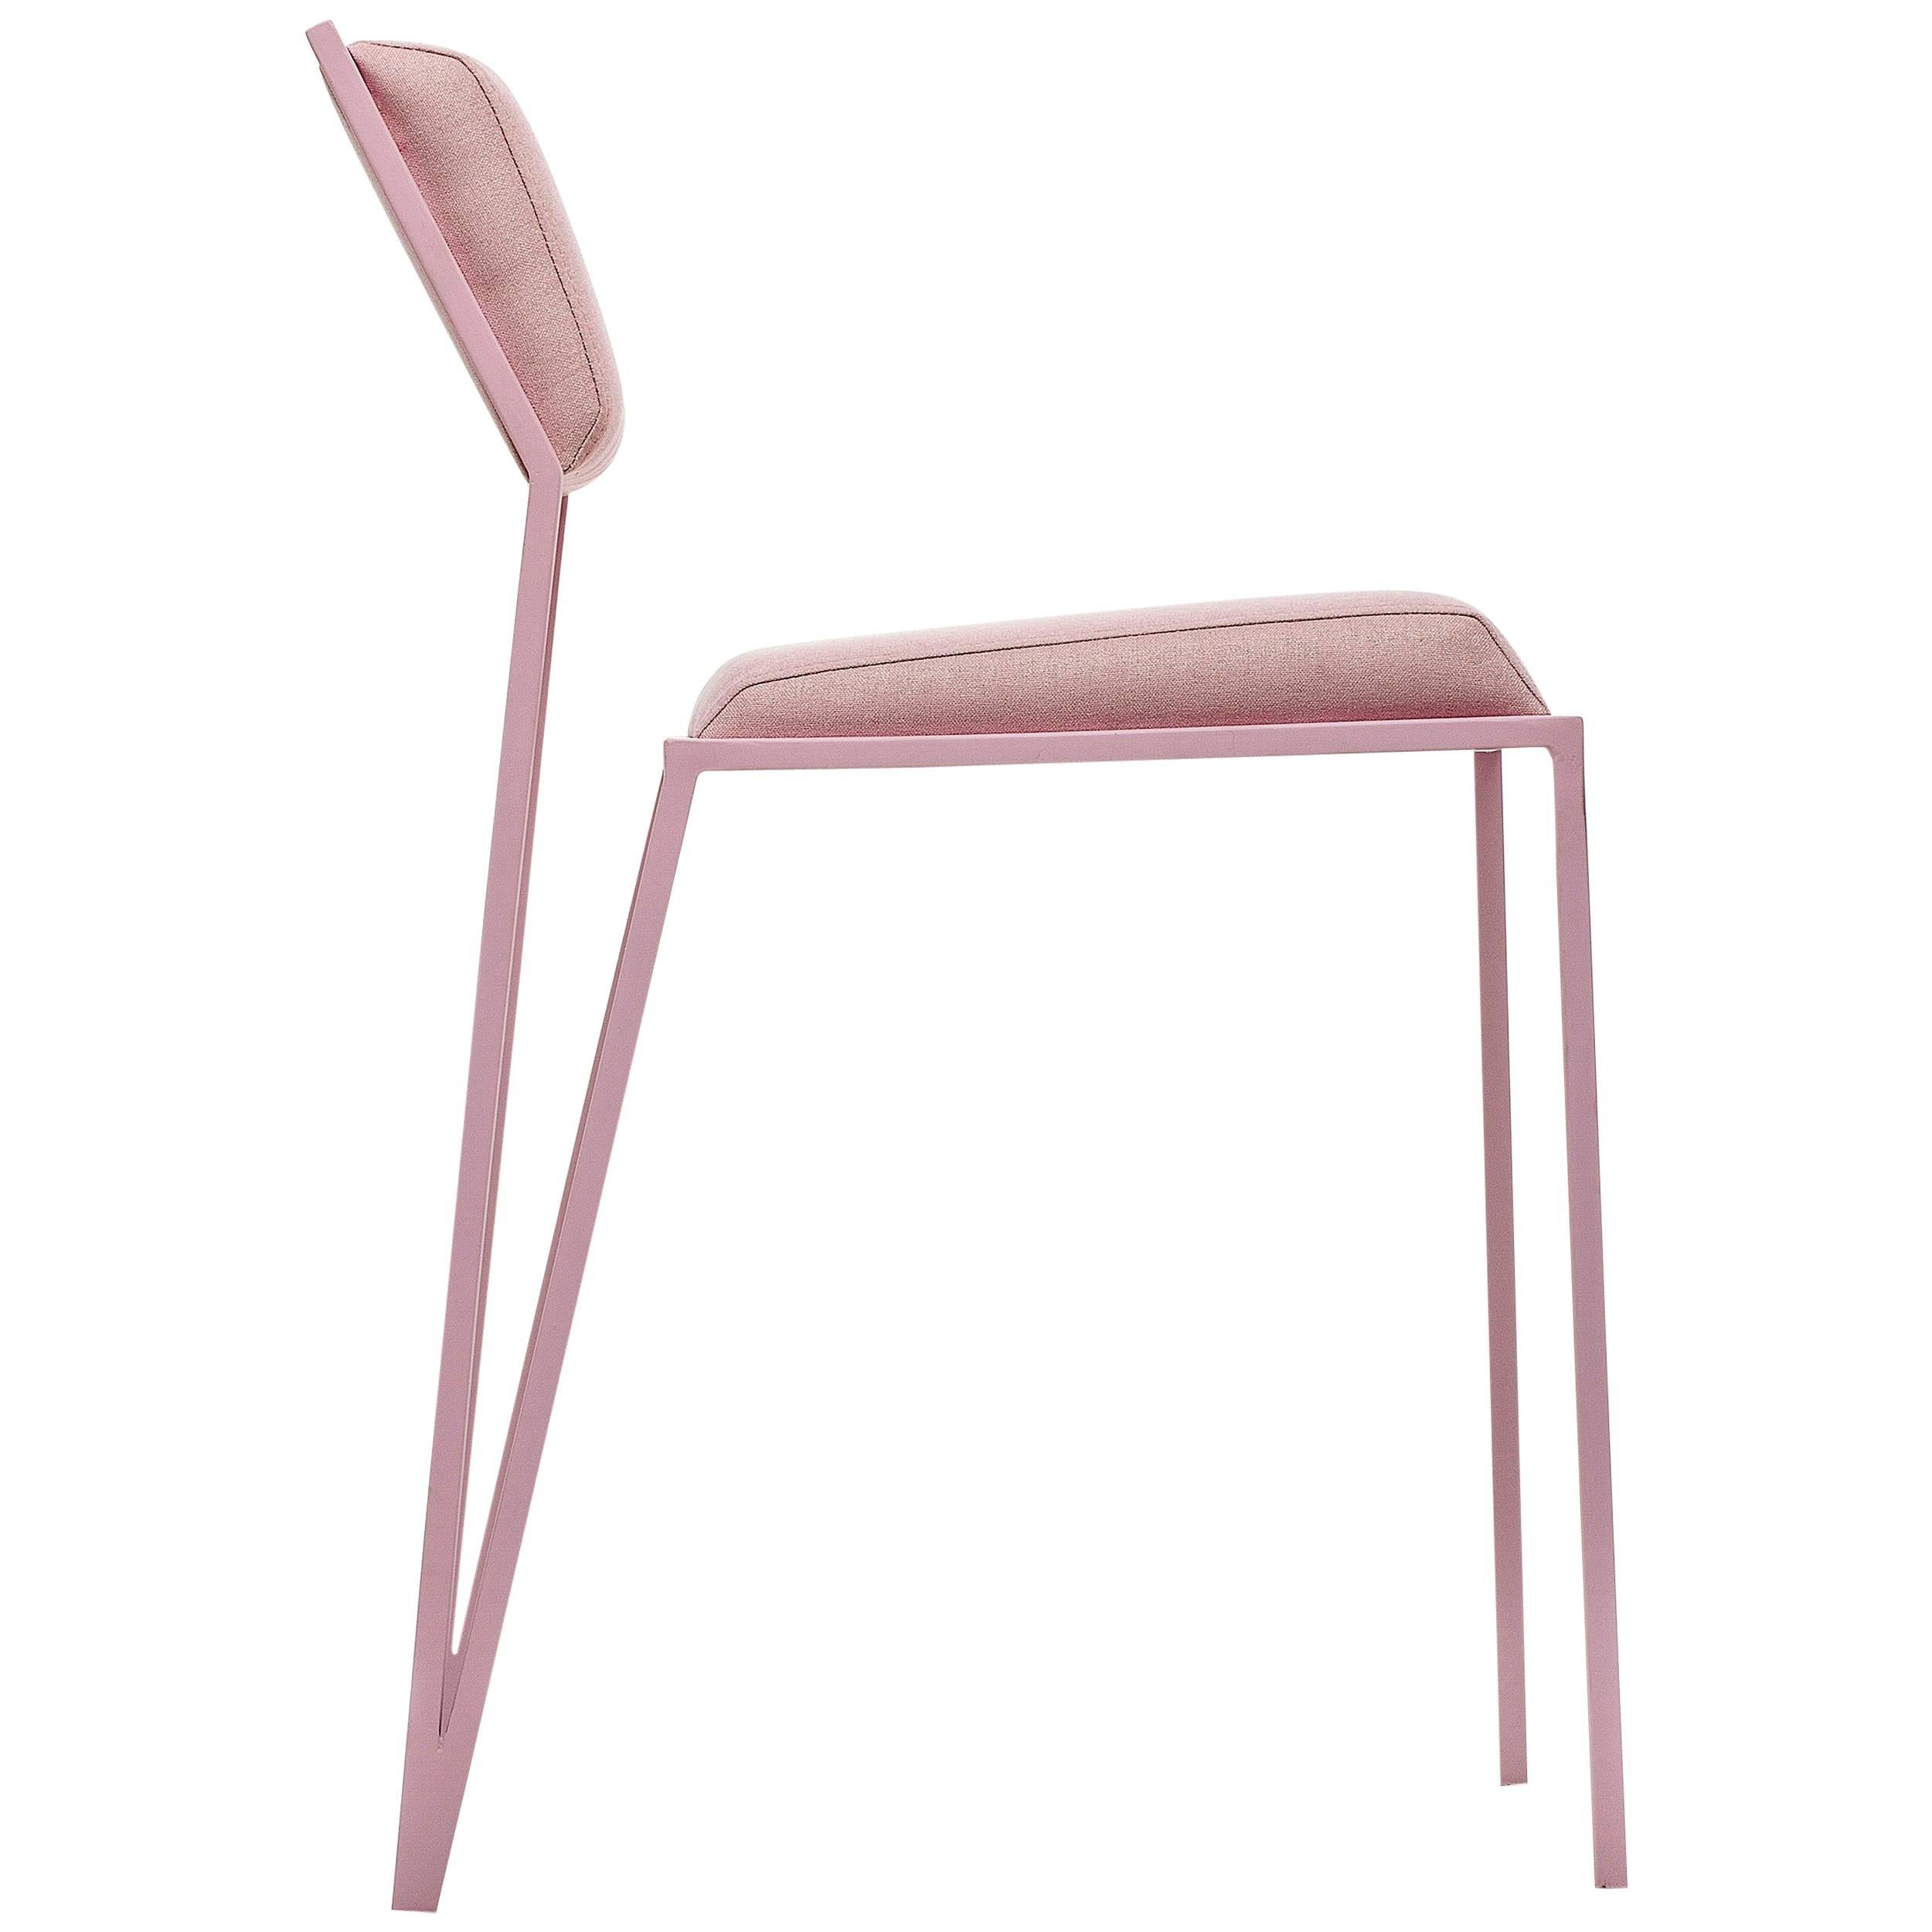 The U0027Velvetu0027 Minimalist Chair Was Designed From Clean And Pure Lines With  The Elimination